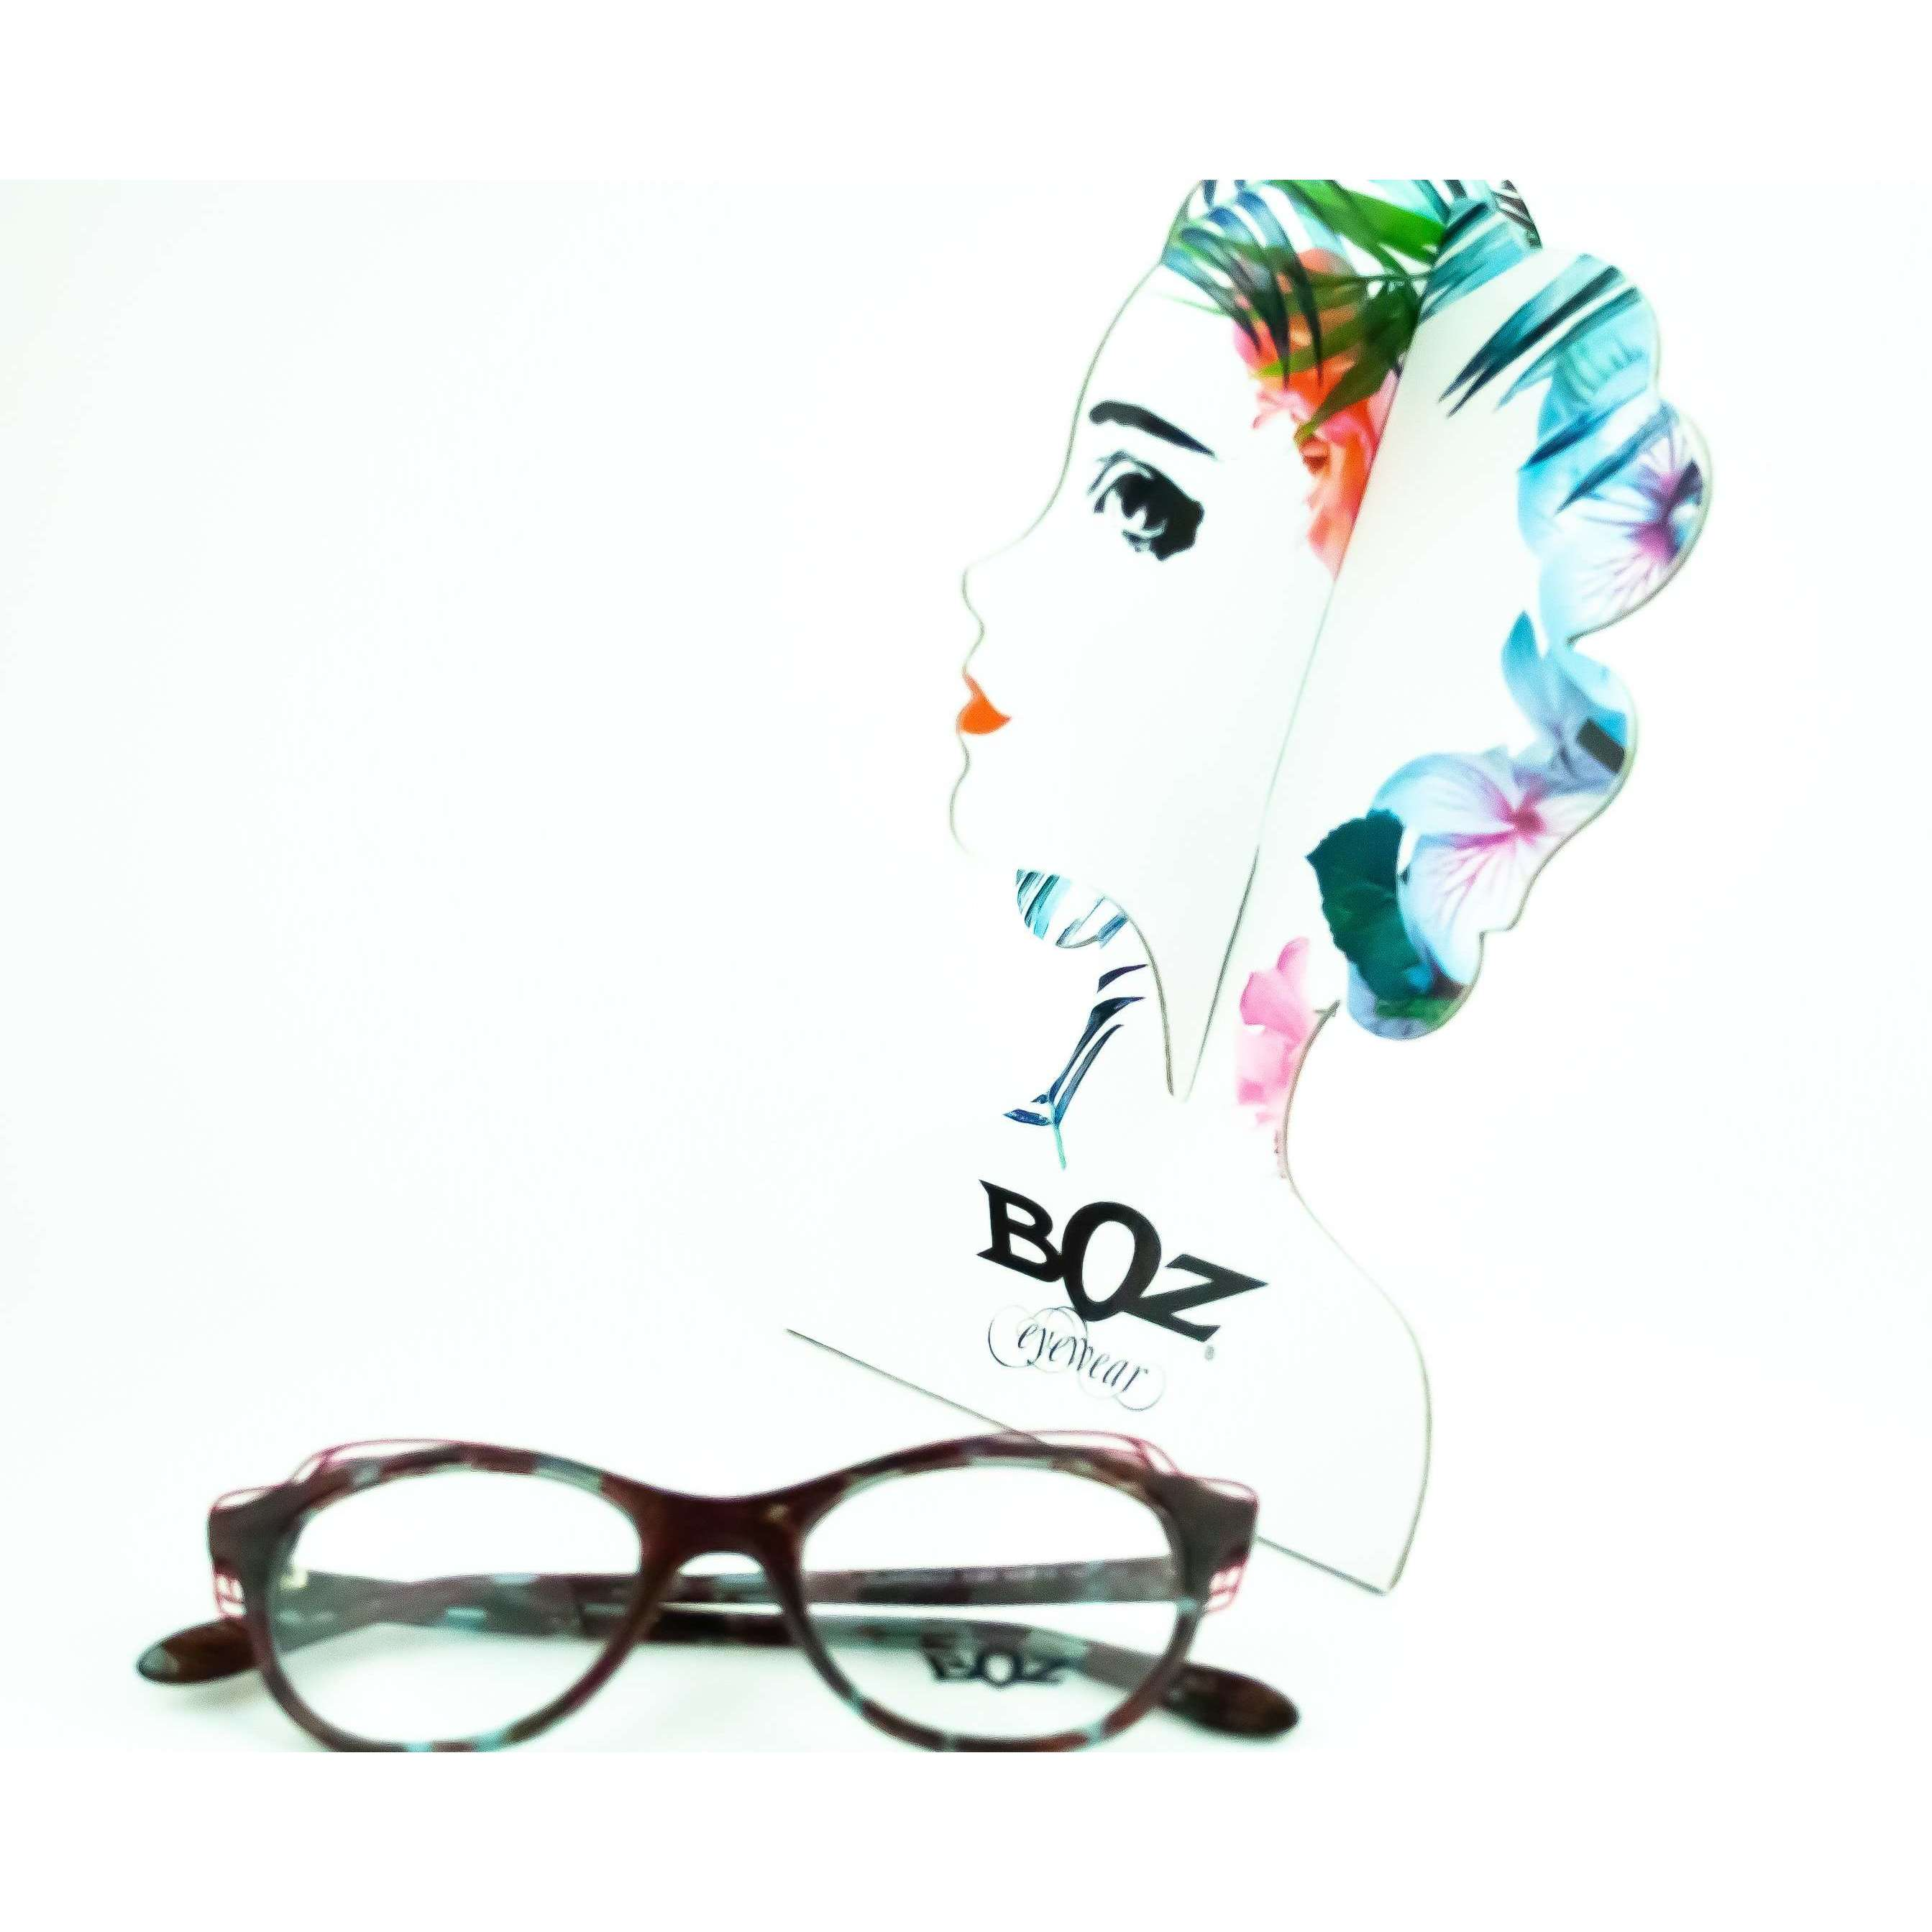 BOZ Flamenco Cat Eye Glasses